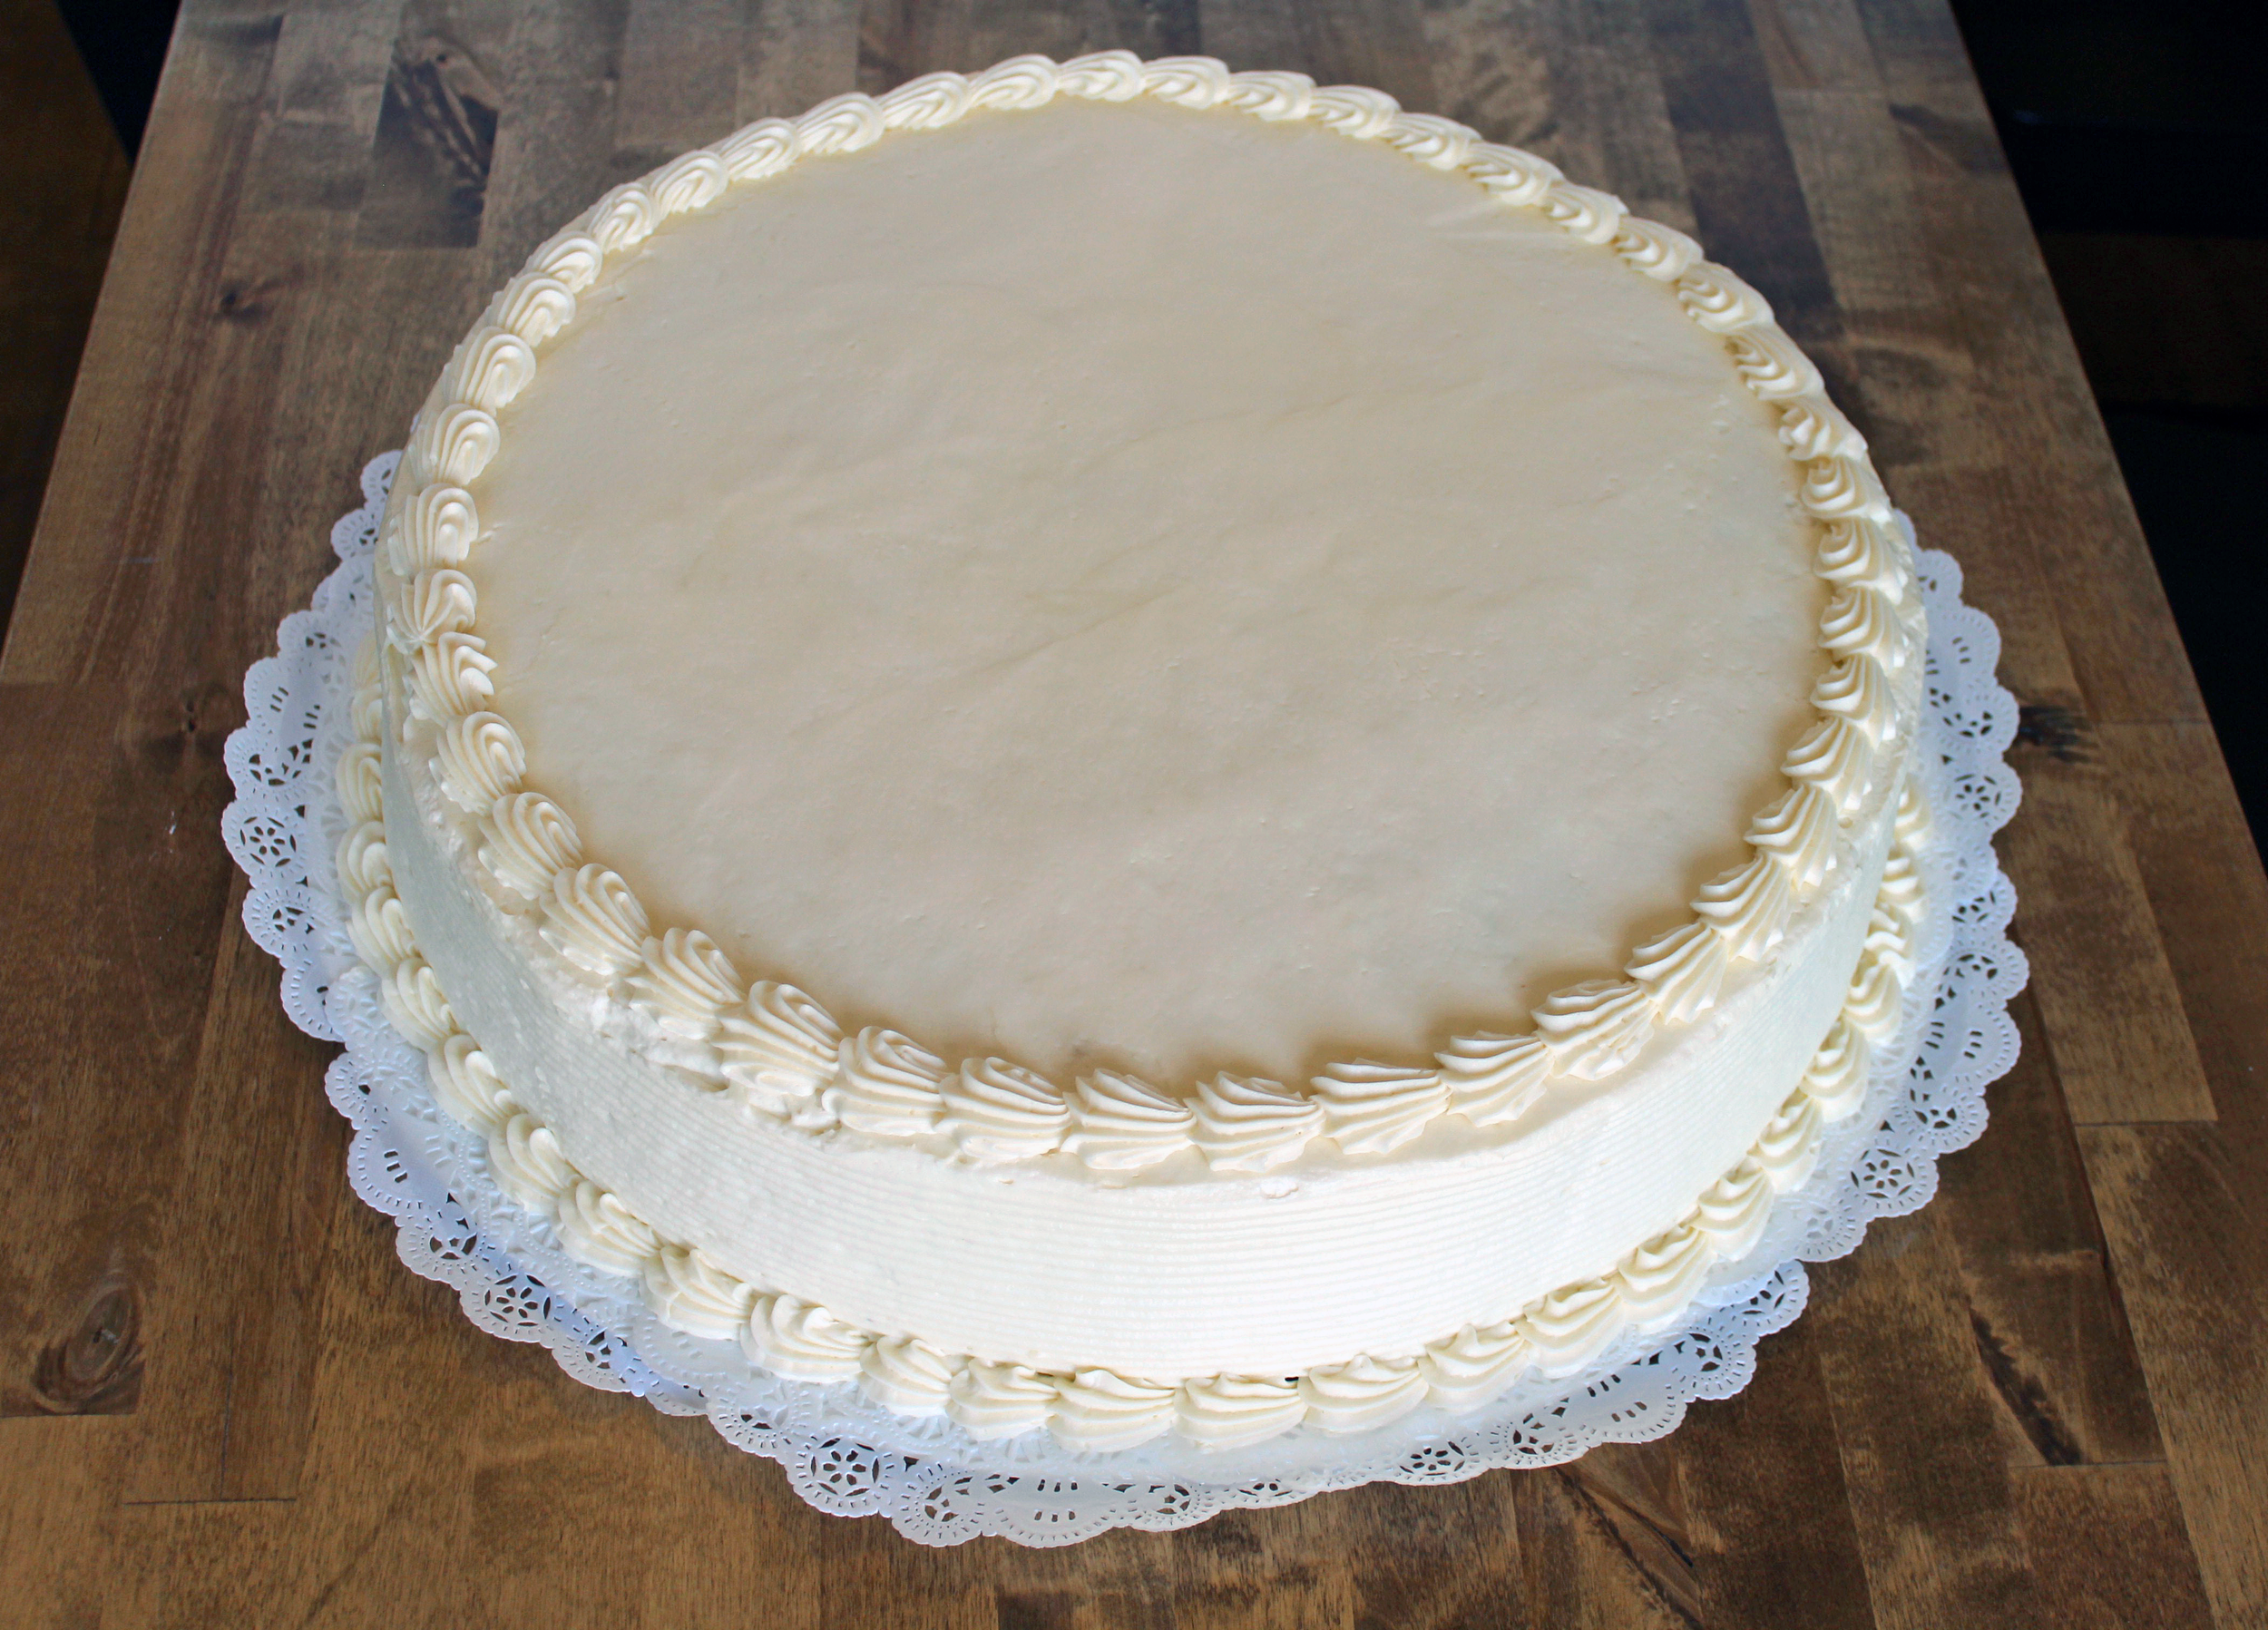 16 in round cake - $59.99    serves 45-55 people